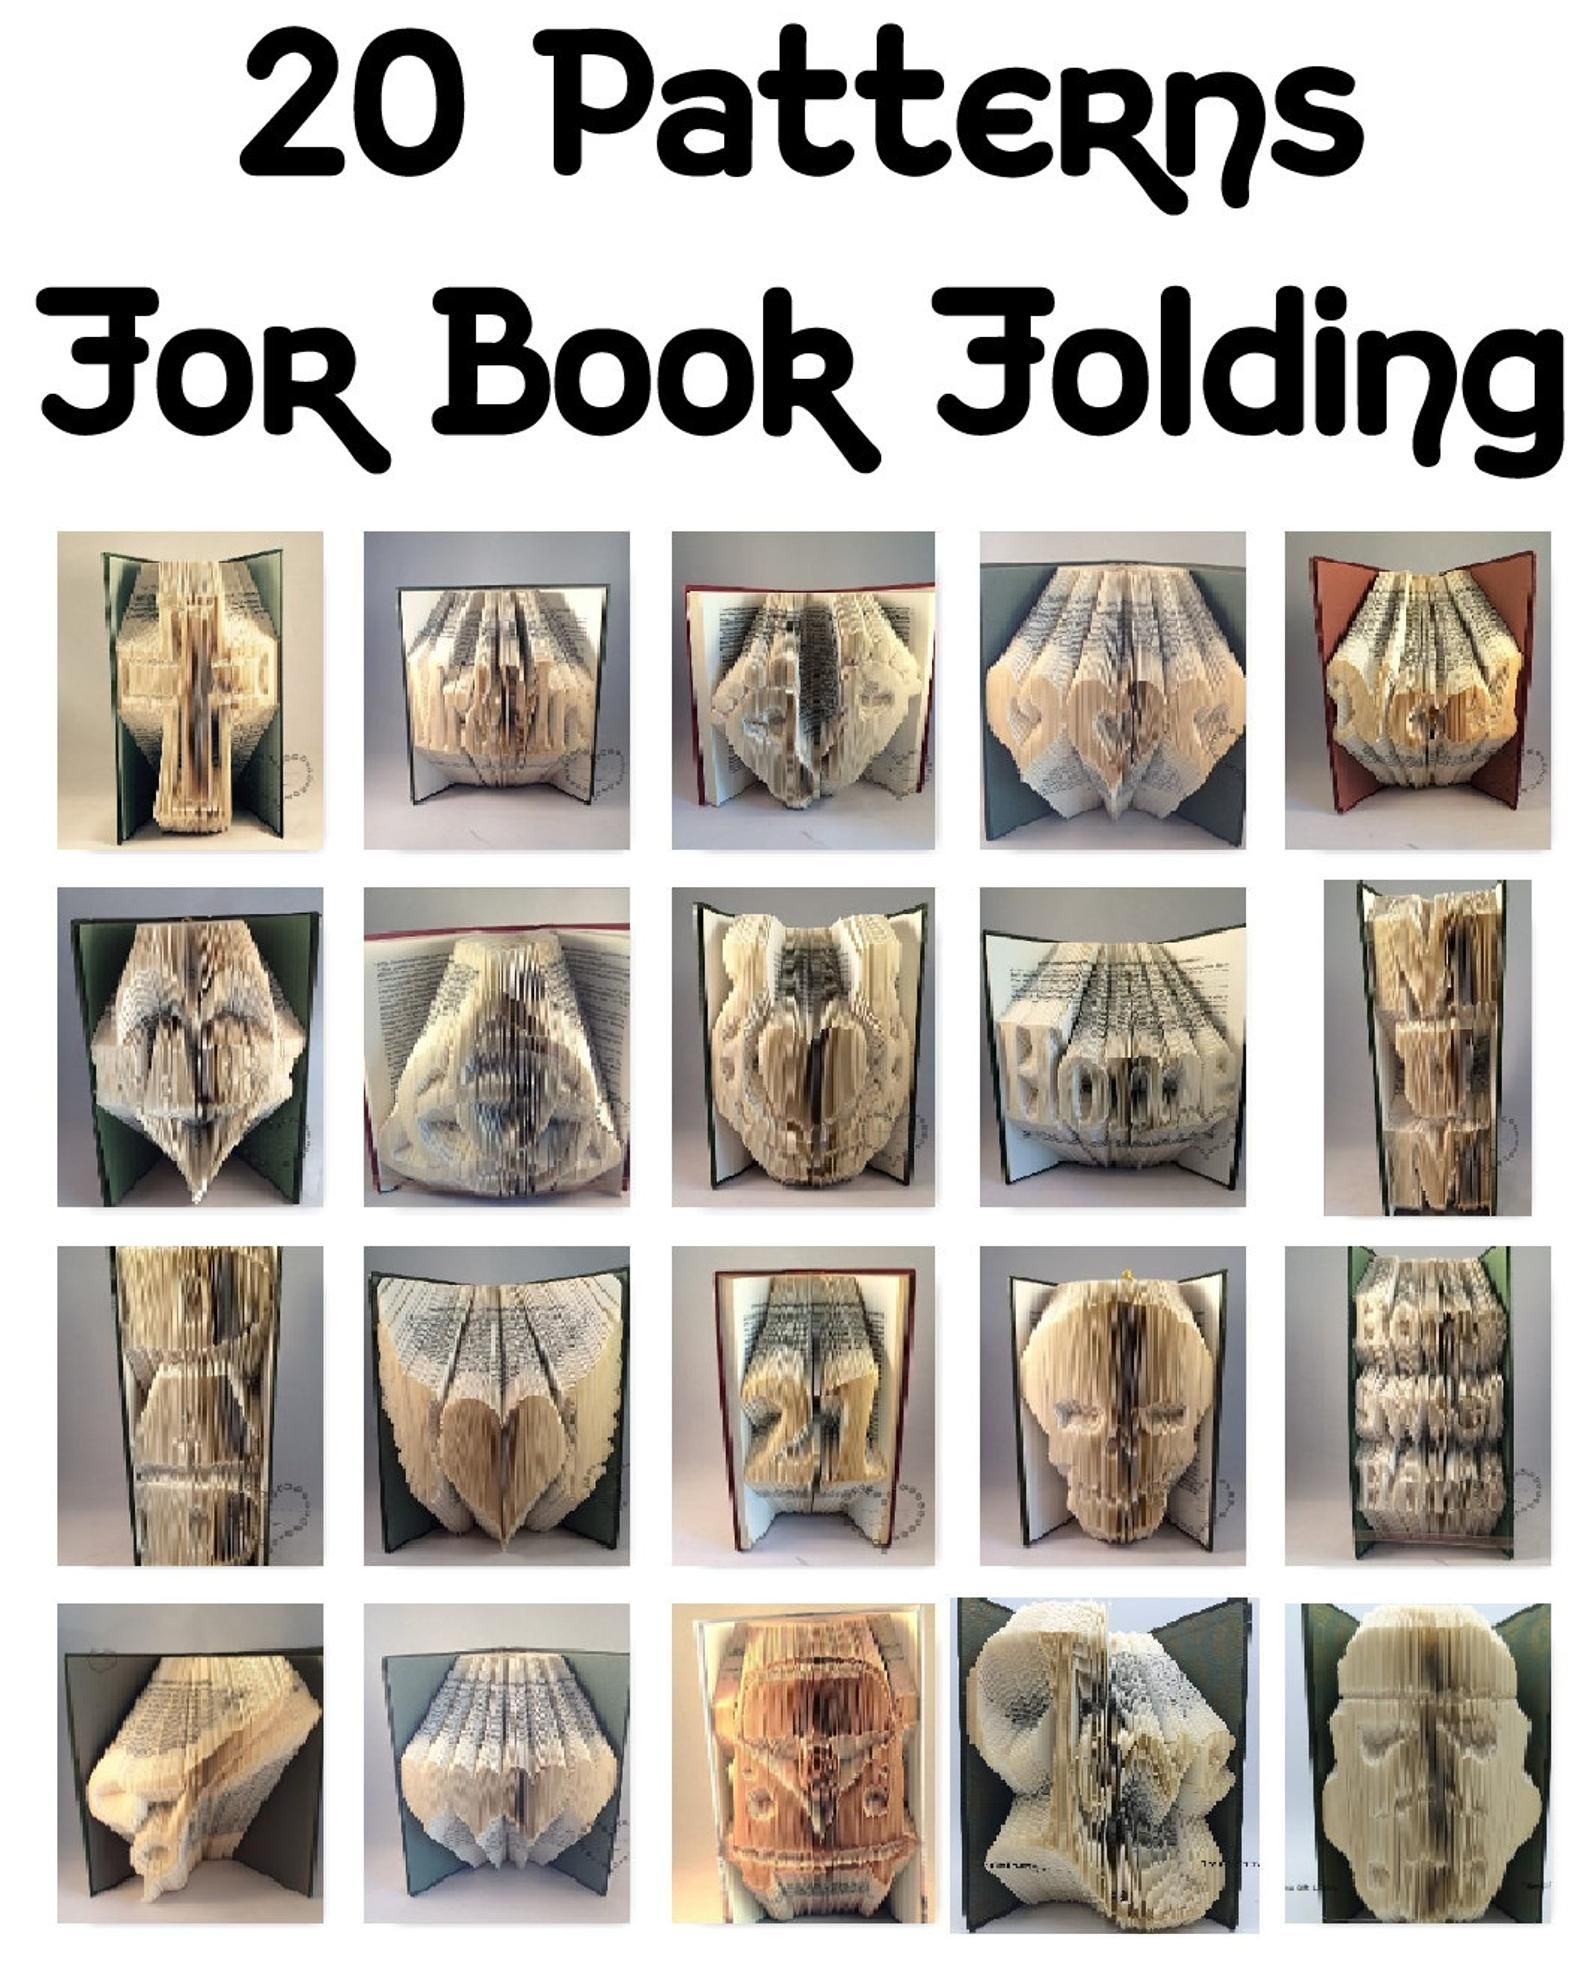 20 Patterns for Book folding patterns, book art,  to create your folded books